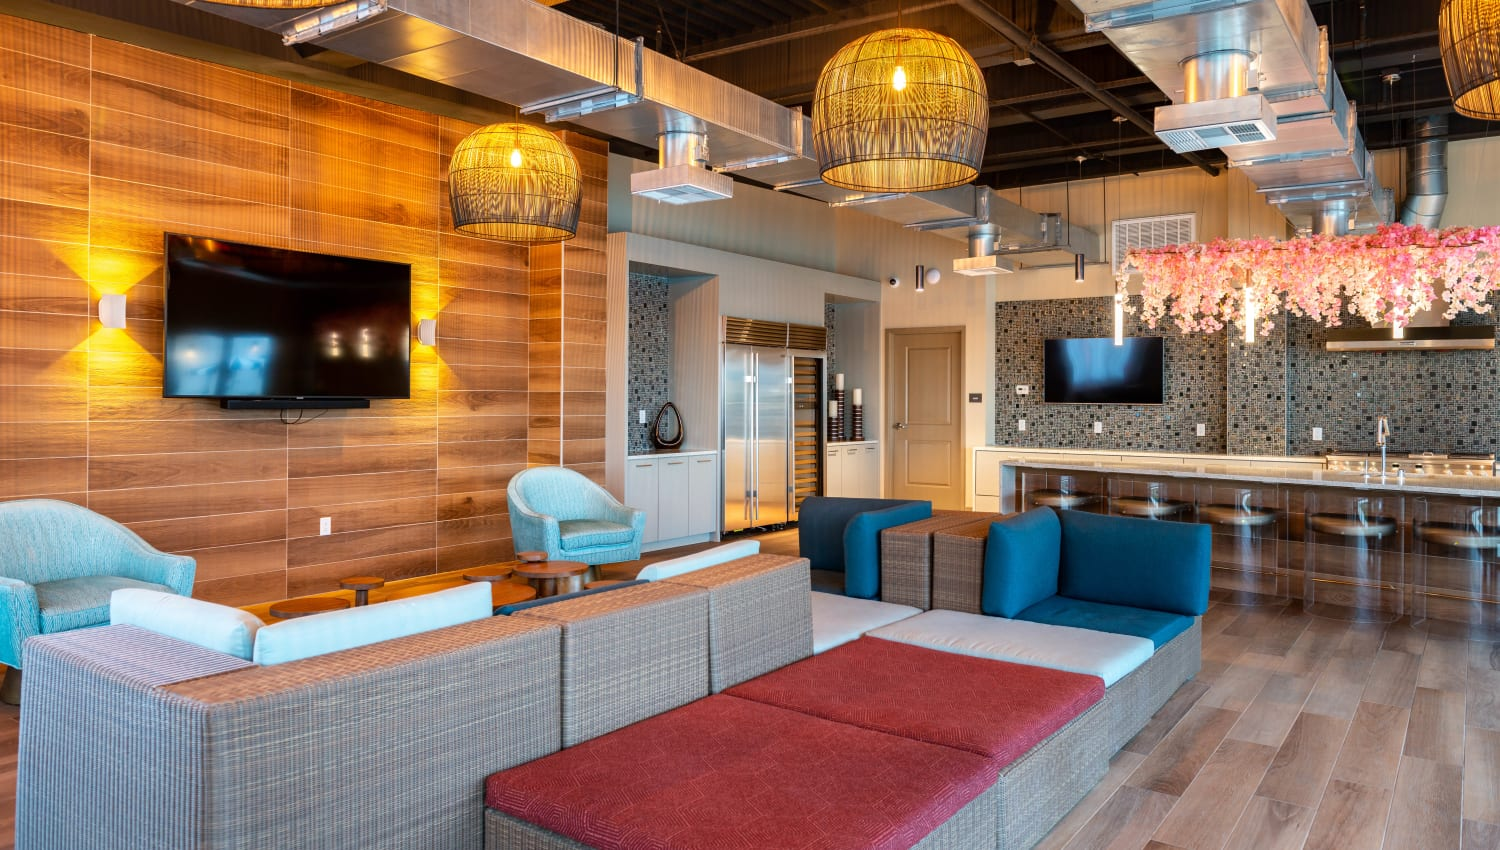 Flatscreen TVs in one of the resident lounge areas at Fusion Apartments in Irvine, California